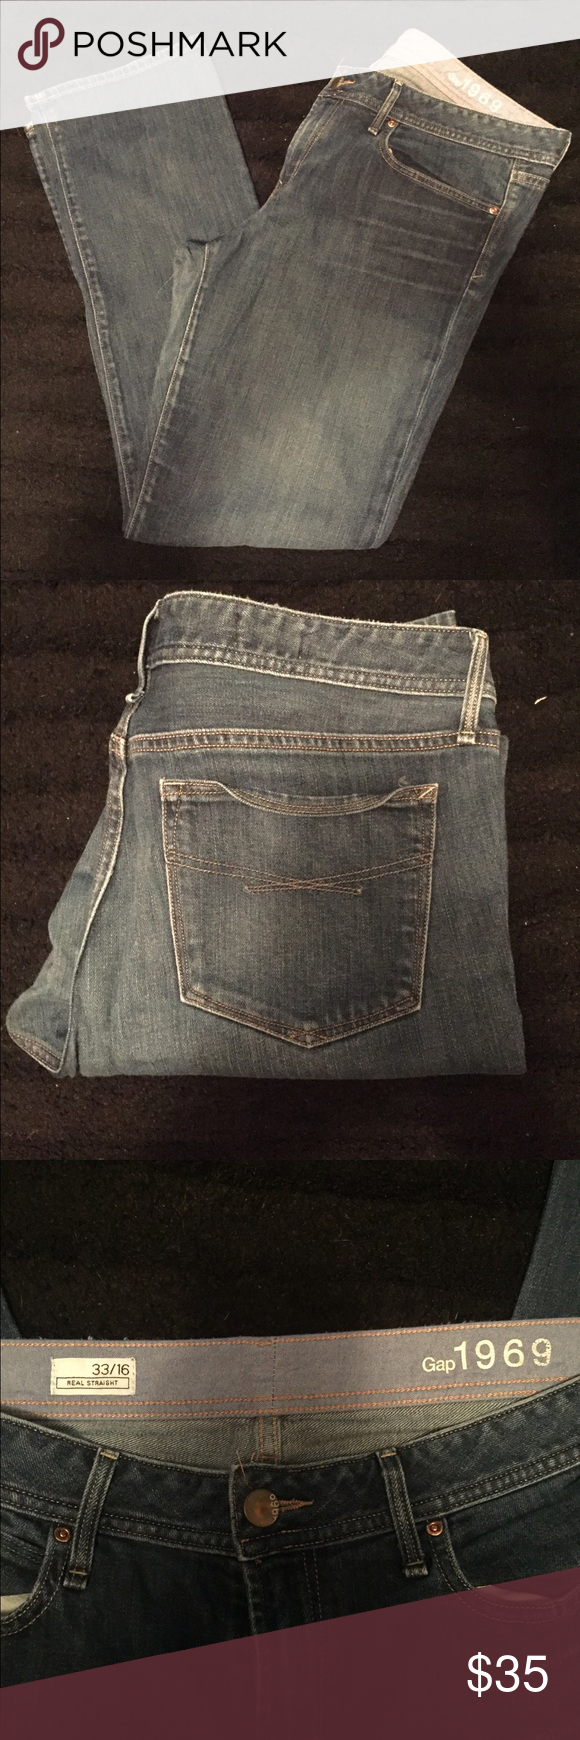 *Sale* Gap Jeans Size 16 Gap 1984 jeans. Only worn a few times. Excellent condition. **Offers welcome** Gap Jeans Straight Leg